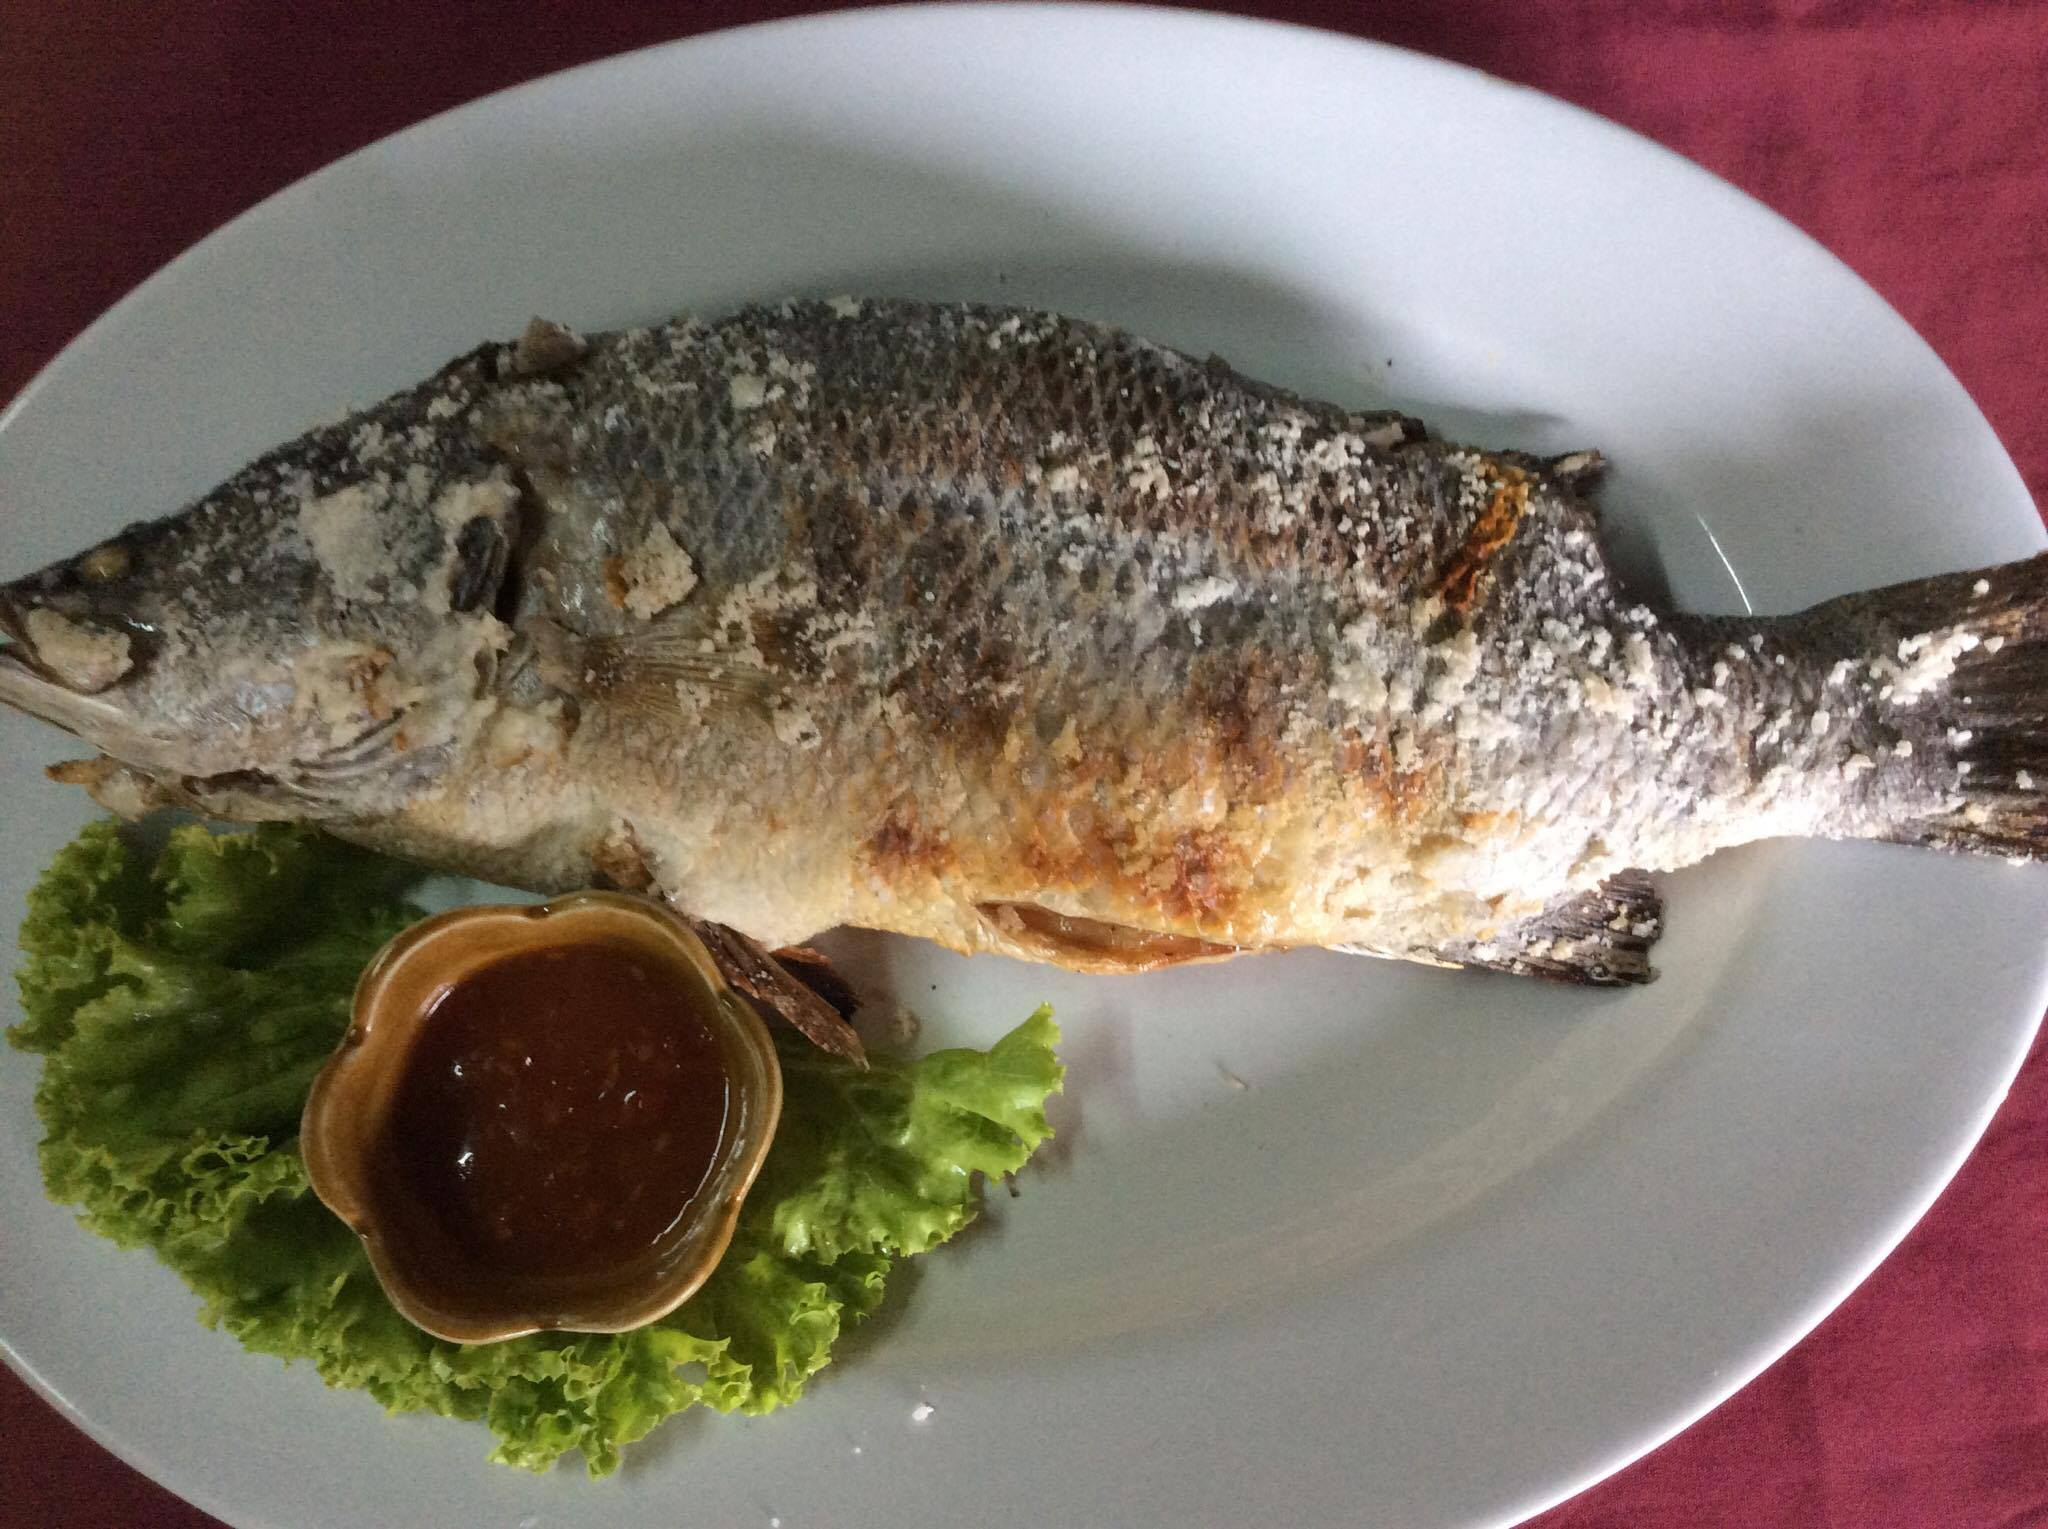 Barbecued Sea Perch